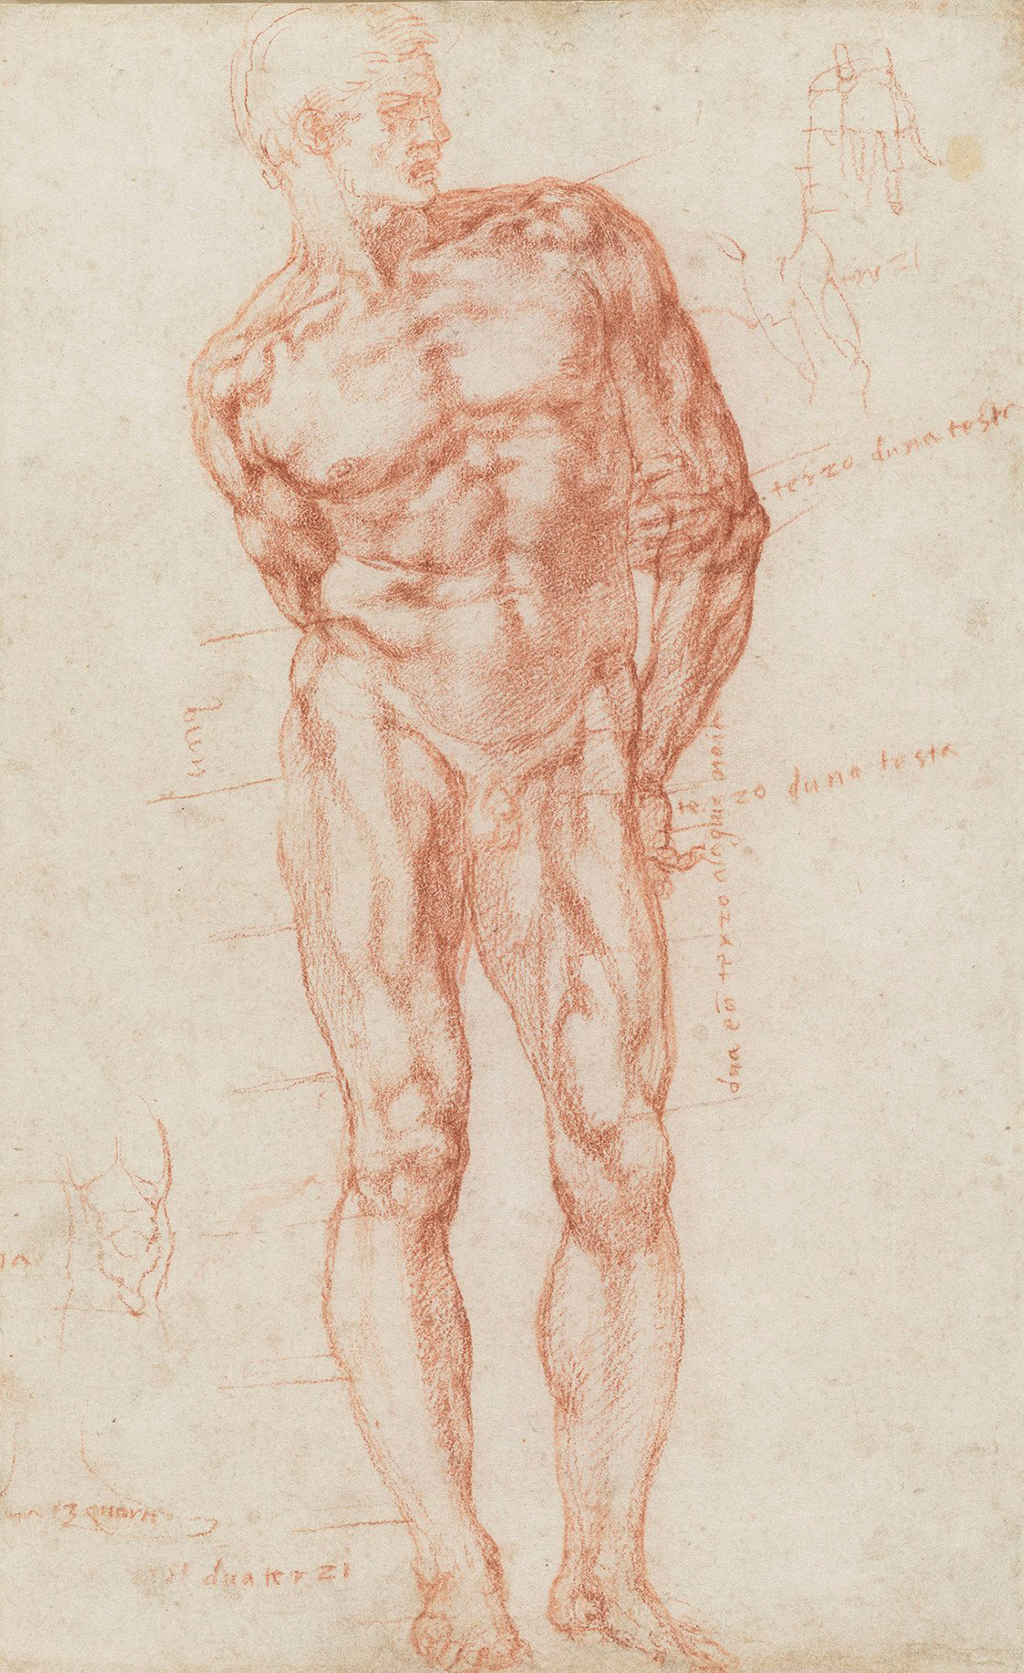 A Male with Proportions Indicated in Detail Michelangelo